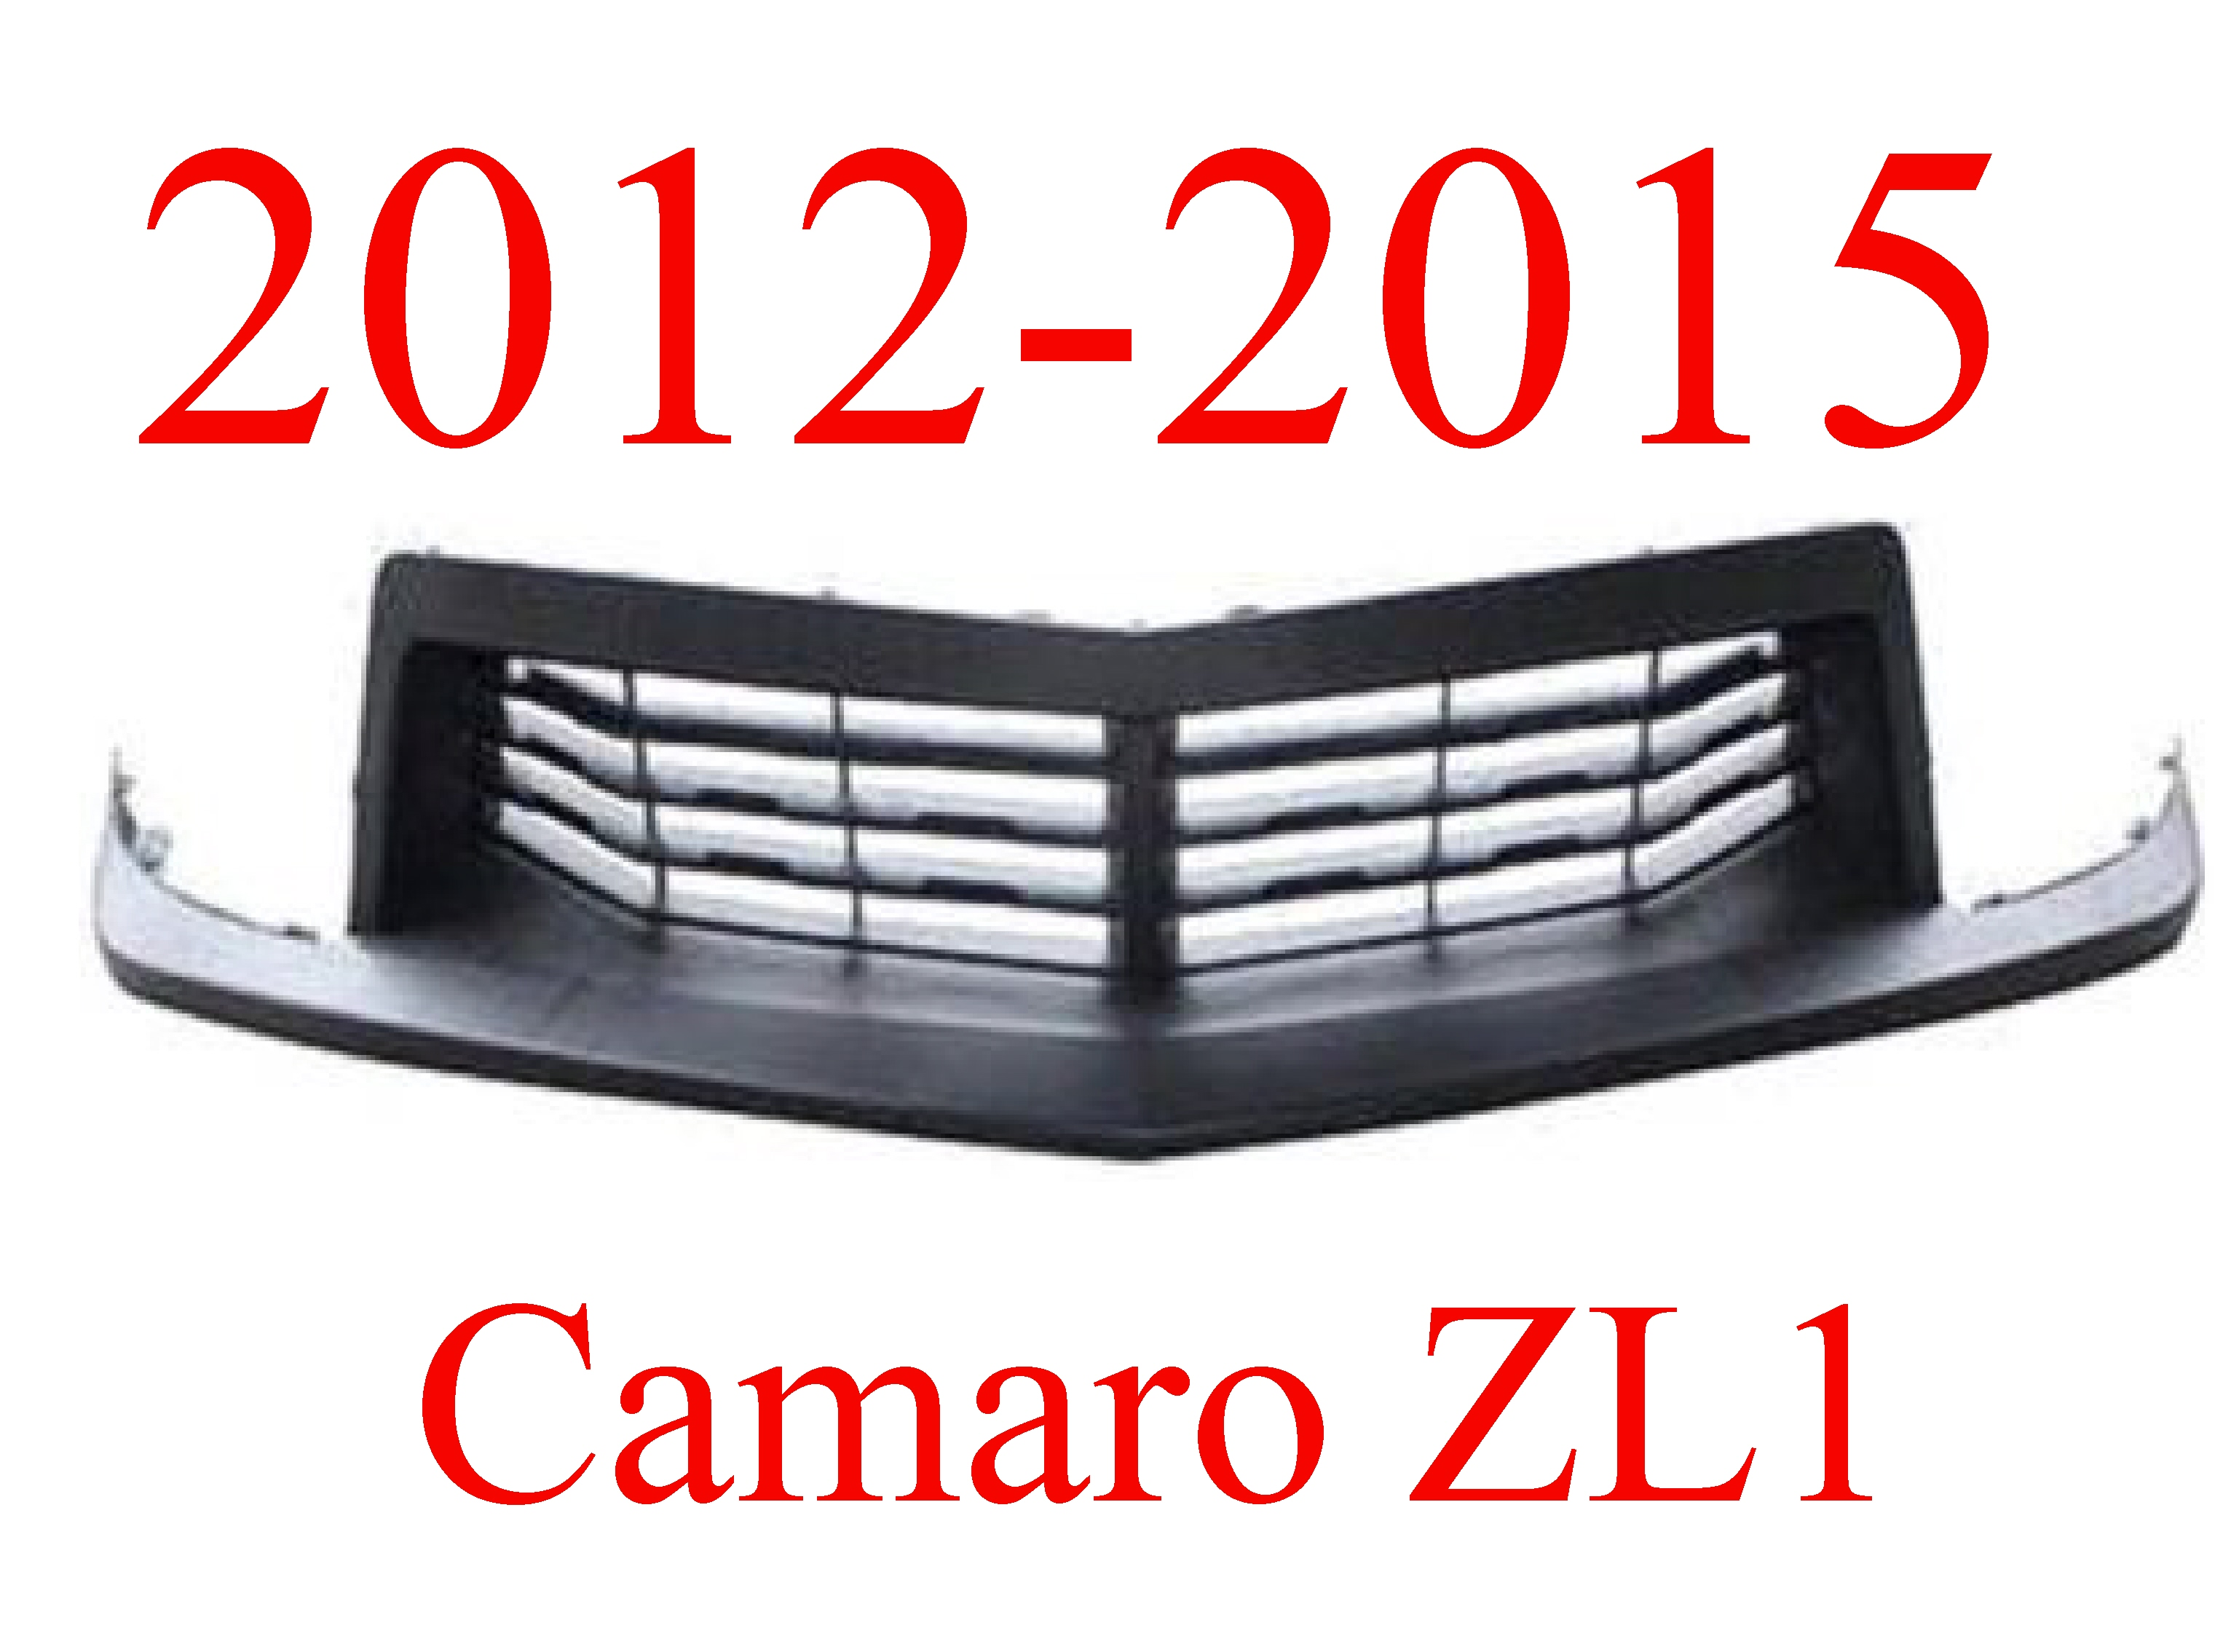 hpf with lc crd tuning toyota cruiser l online parts common factory horsepower series rail now diesel flash